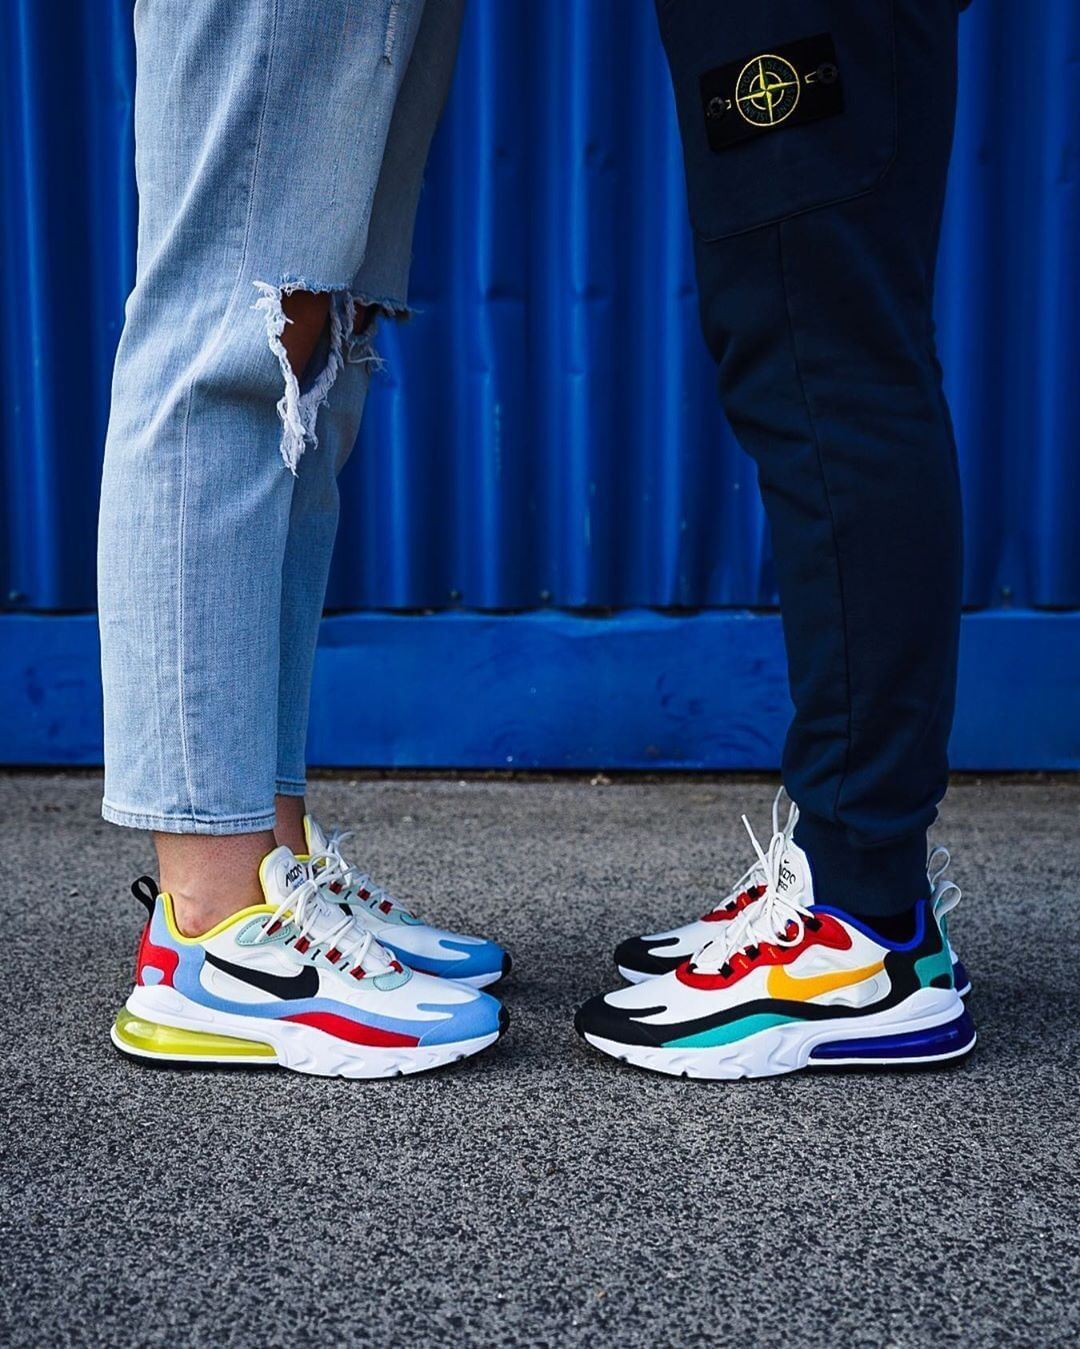 Nike Air Max 270 React Outfit Ideas : react, outfit, ideas, React, Couple, Goals, 👫, ⠀⠀⠀⠀⠀⠀⠀⠀⠀, Secure,